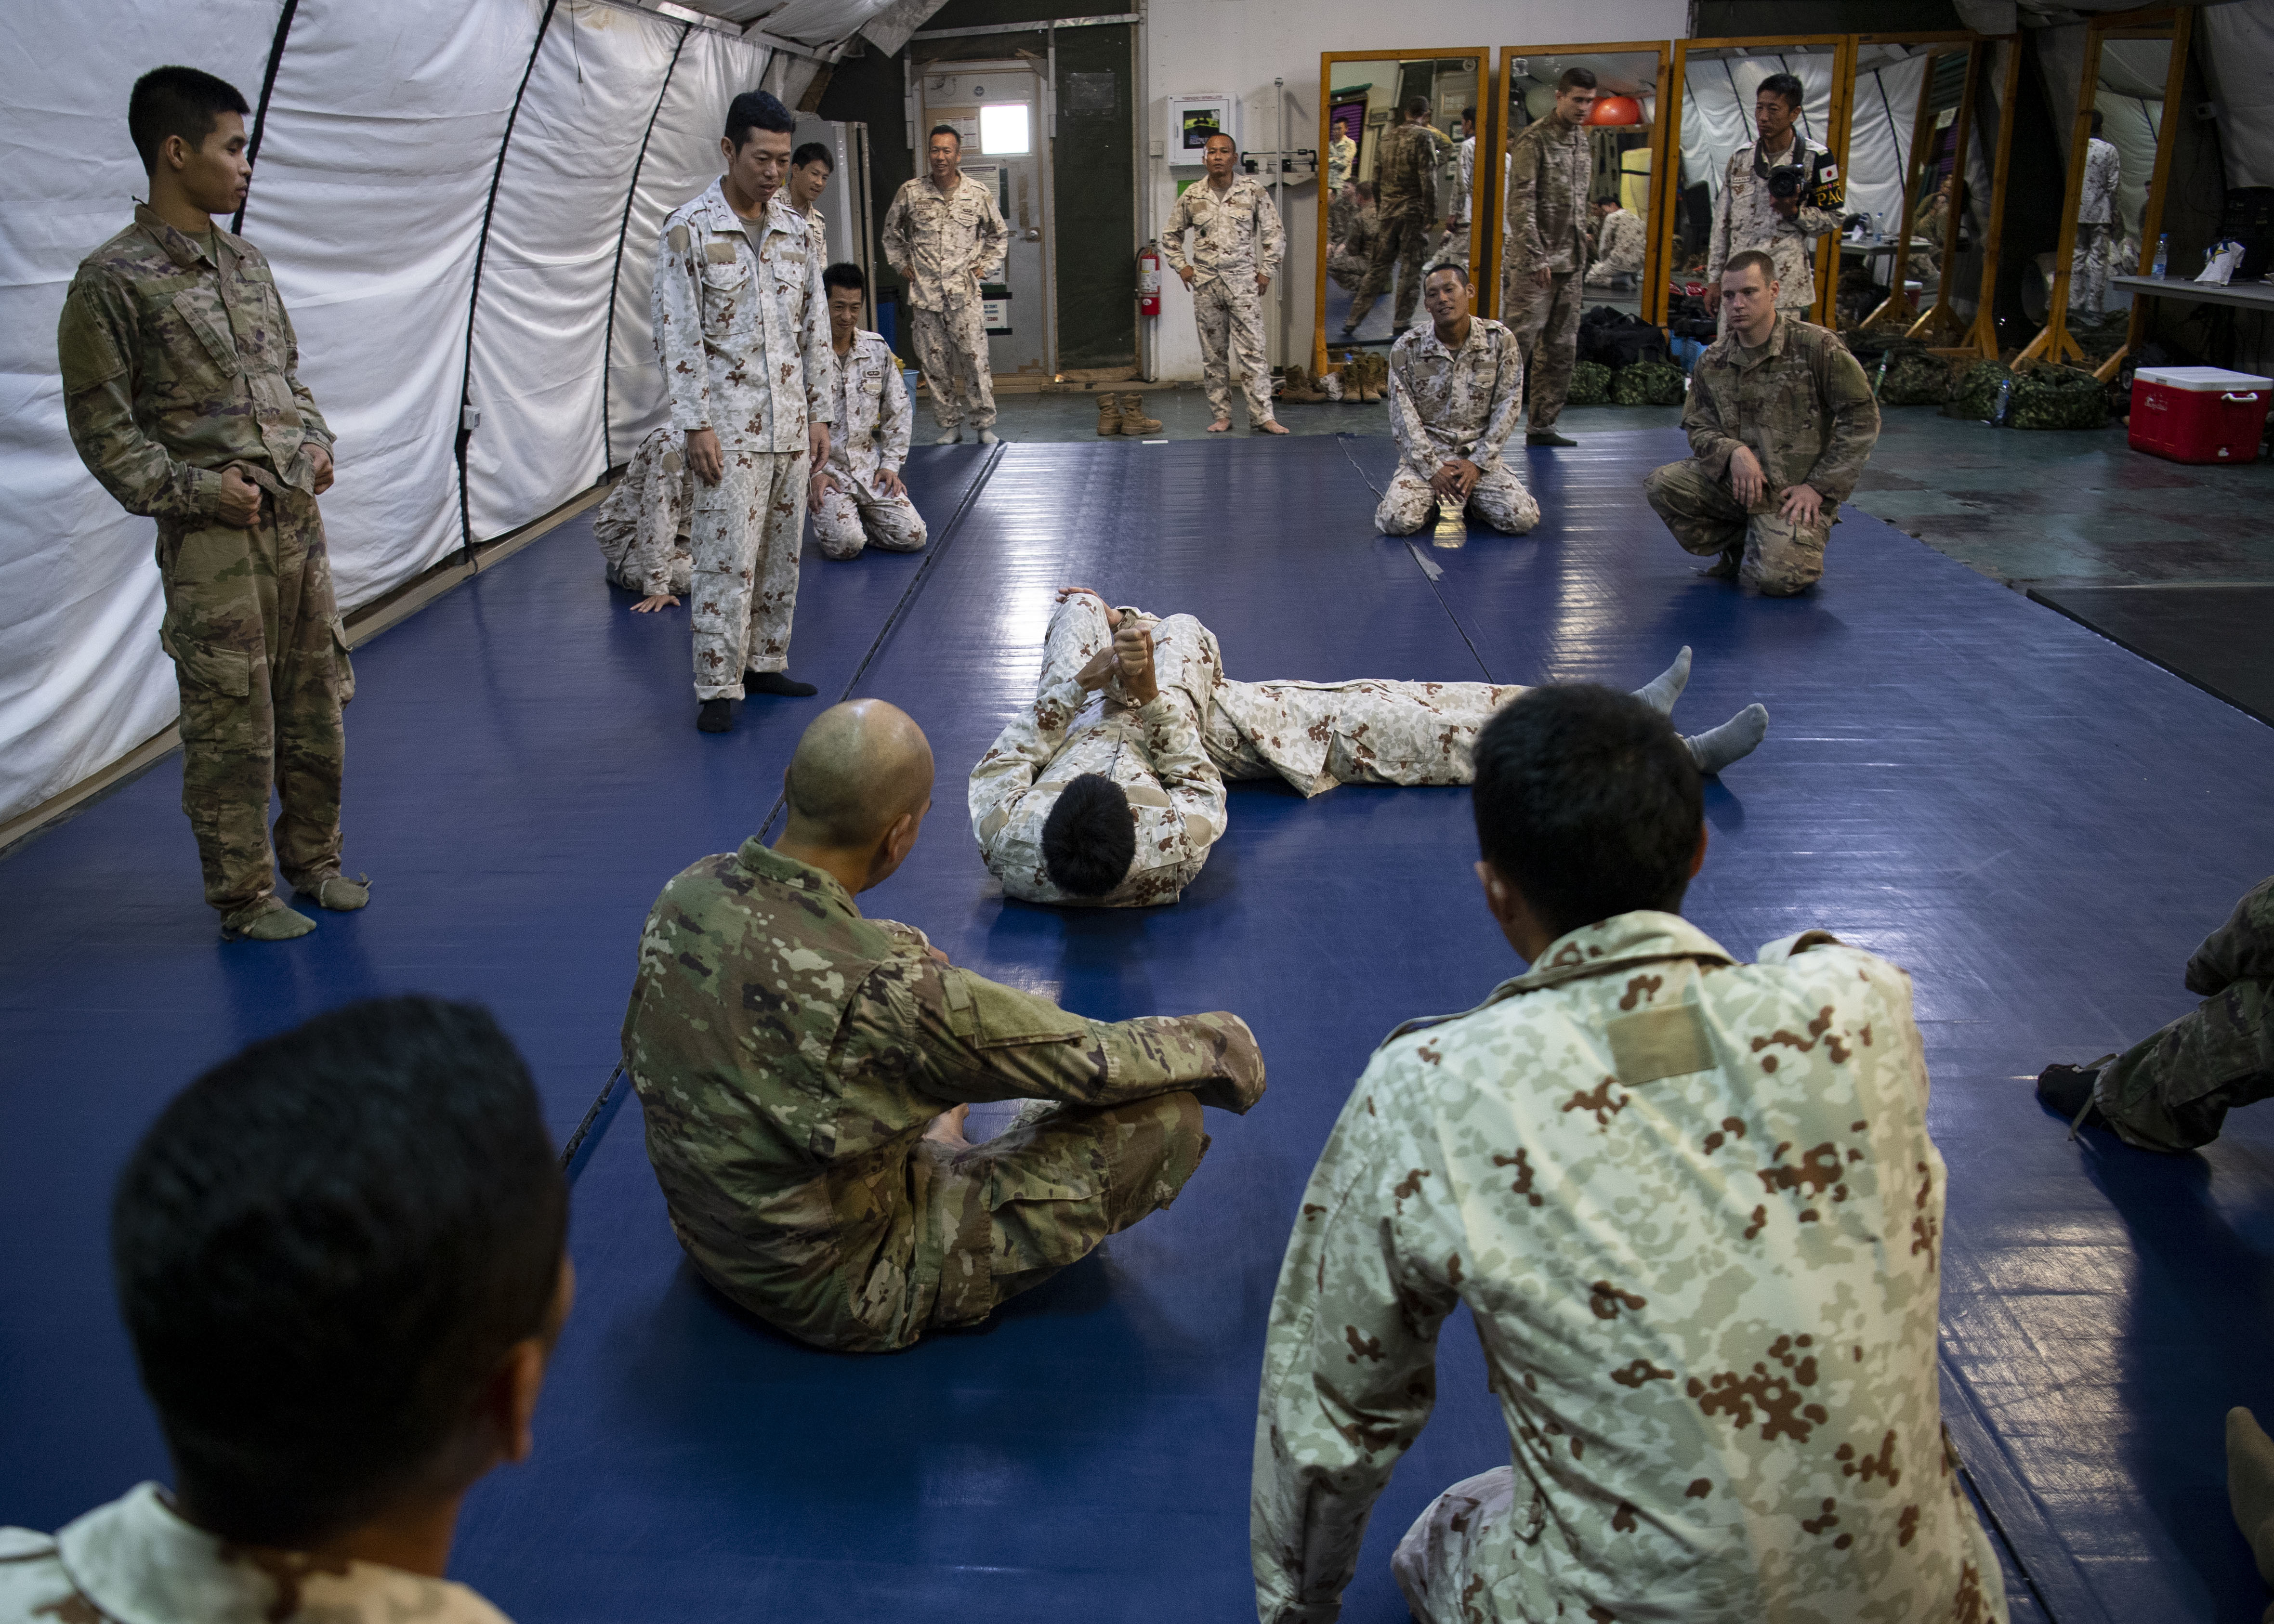 U.S. Army Soldiers assigned to Combined Joint Task Force-Horn of Africa (CJTF-HOA) and Japanese Ground Self-Defense Force (JGSDF) soldiers grapple during a combatives exchange at Camp Lemonnier, Djibouti, July 1, 2019. The purpose of the joint exchange was to share Japanese combative techniques and forge relationships between CJTF-HOA and the JGSDF. (U.S. Air Force photo by Staff Sgt. J.D. Strong II)